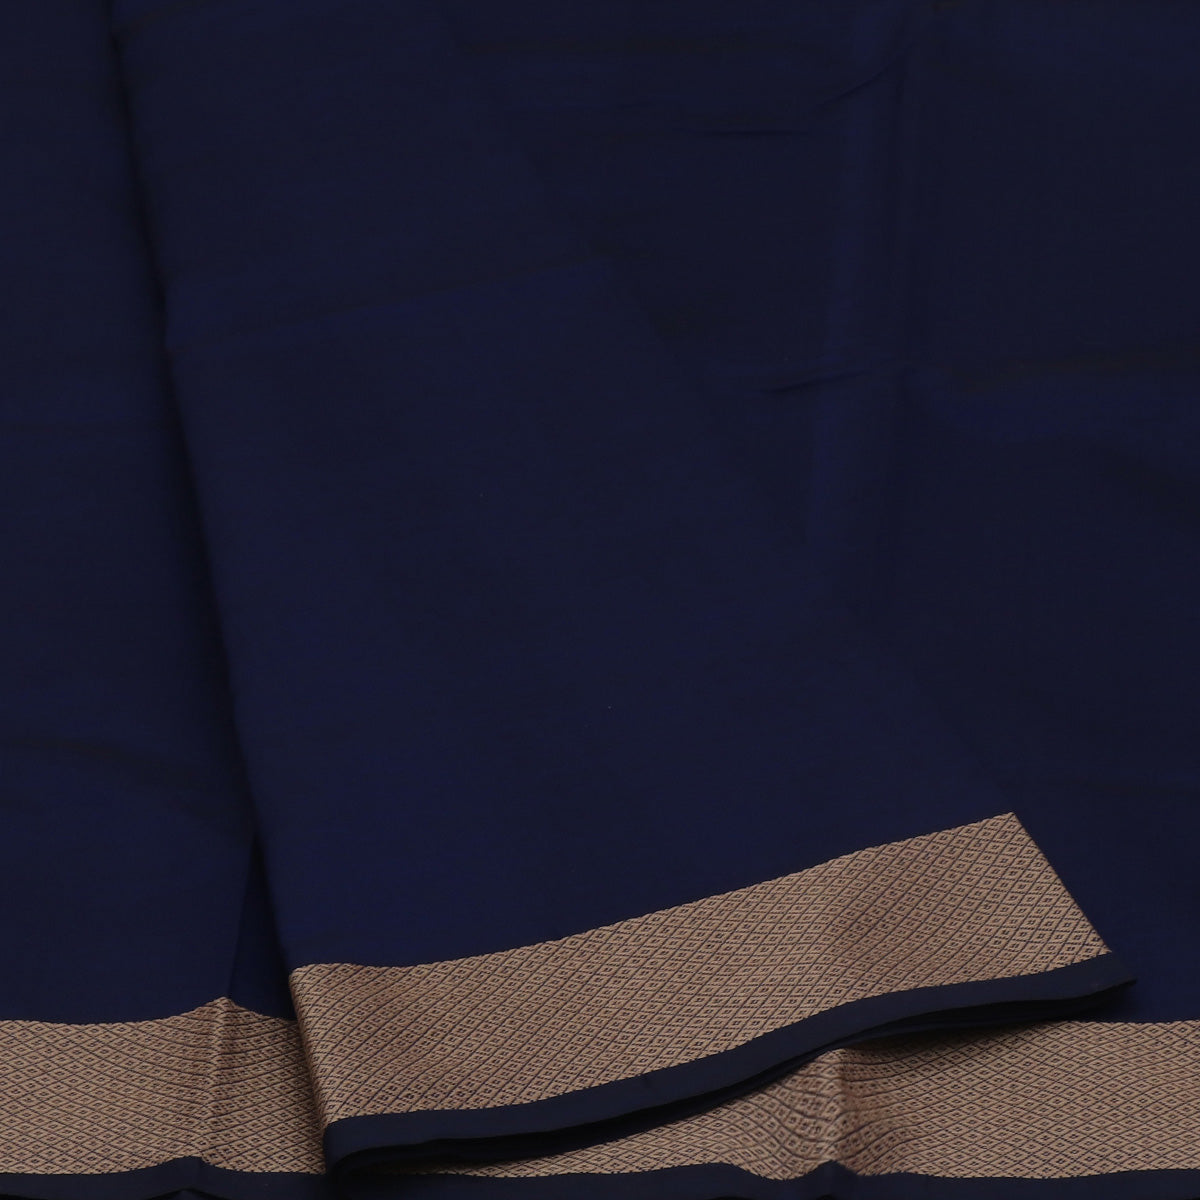 Poly Cotton Saree Blue and Brown with Thread border